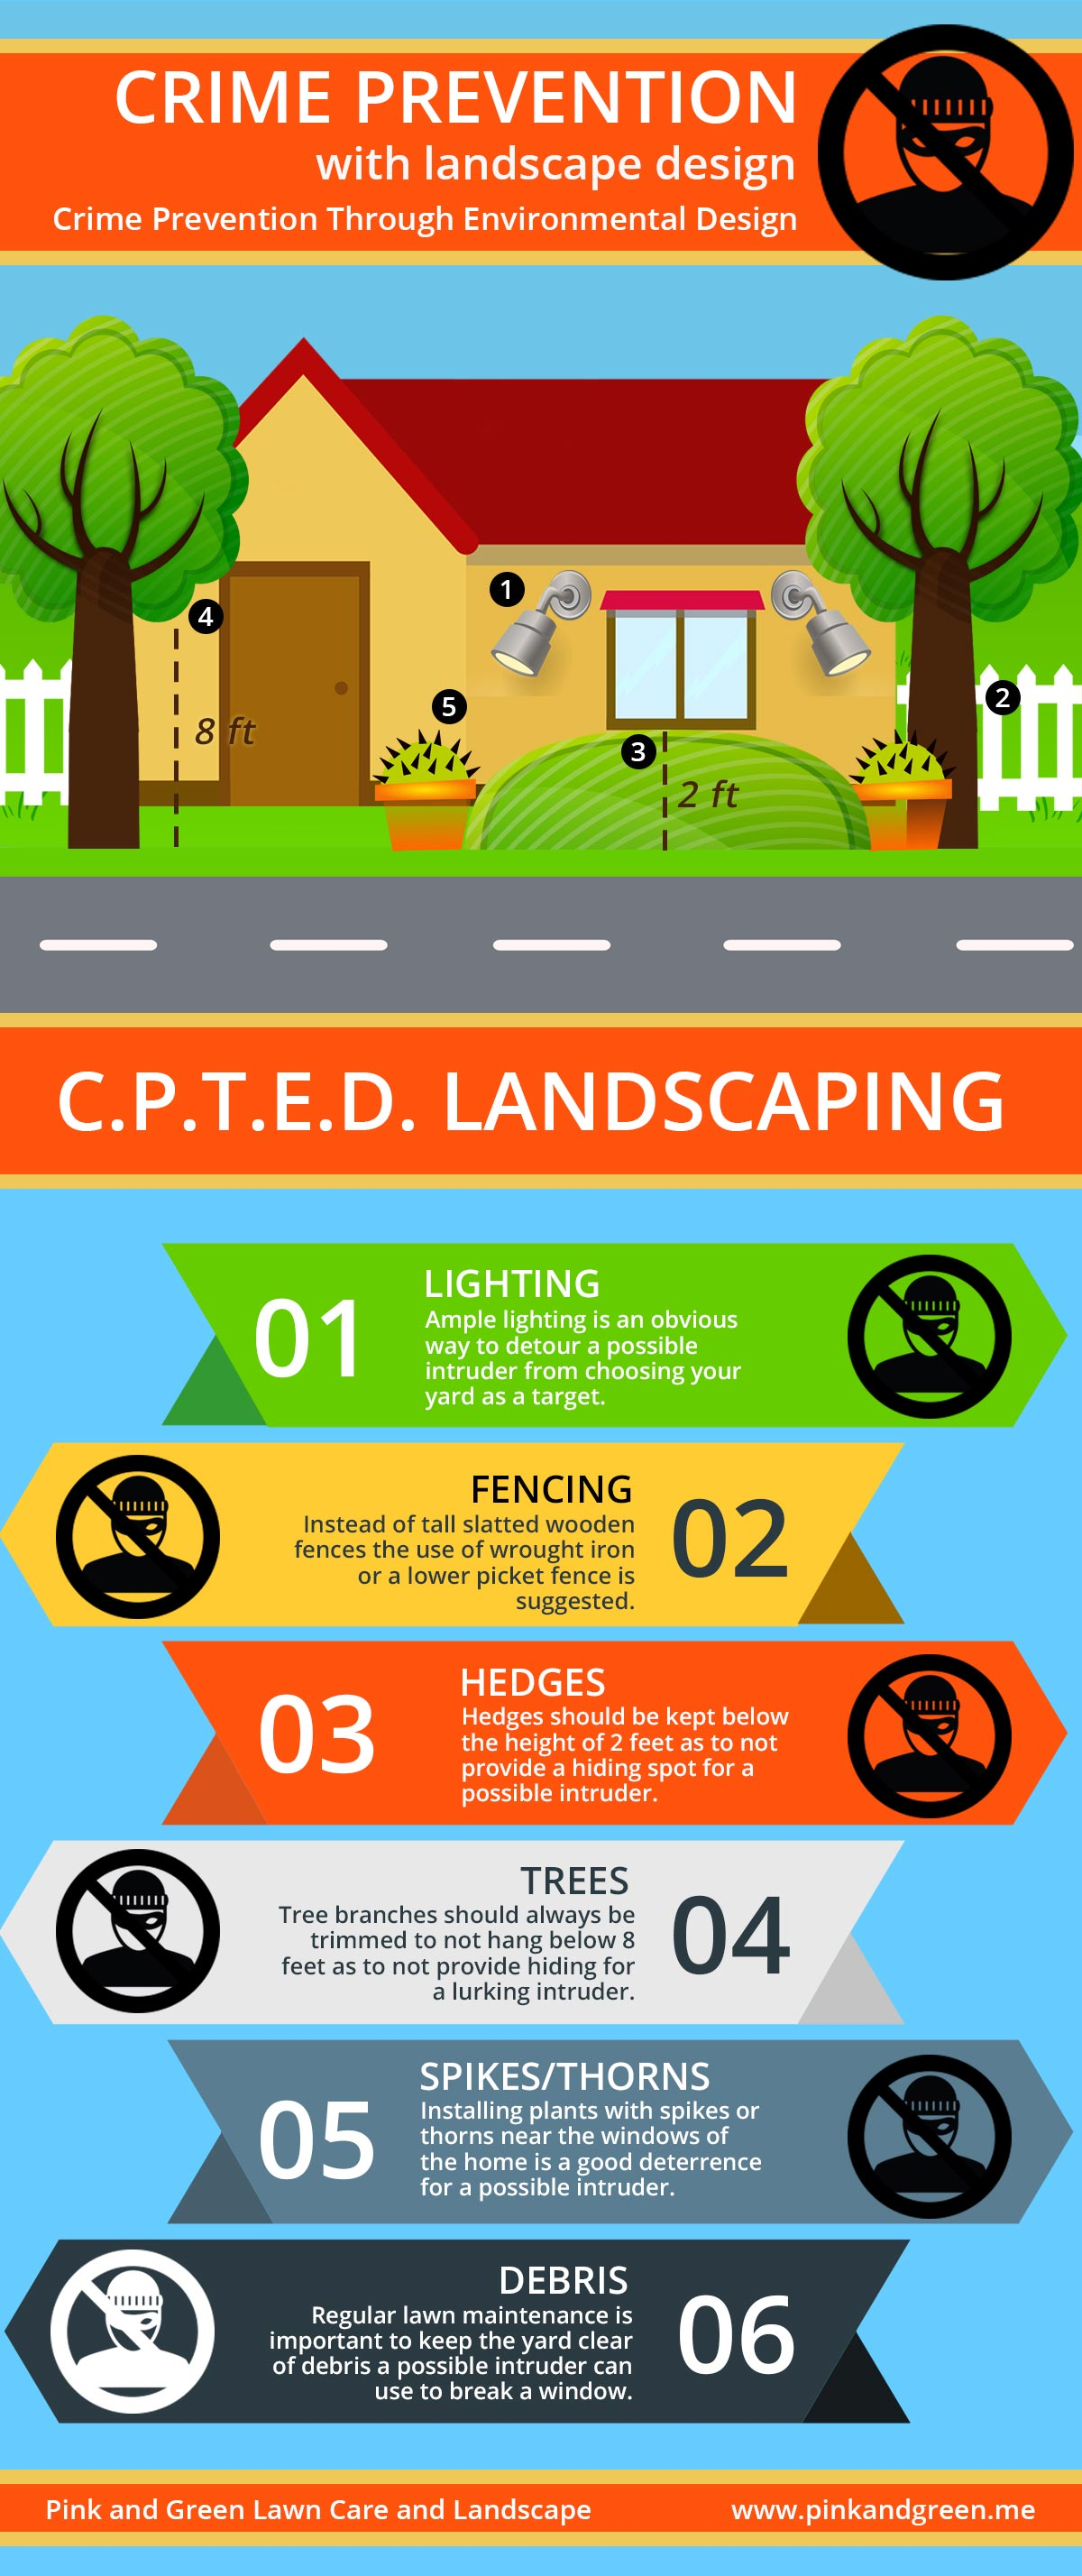 CPTED - Preventing Crime with Landscaping